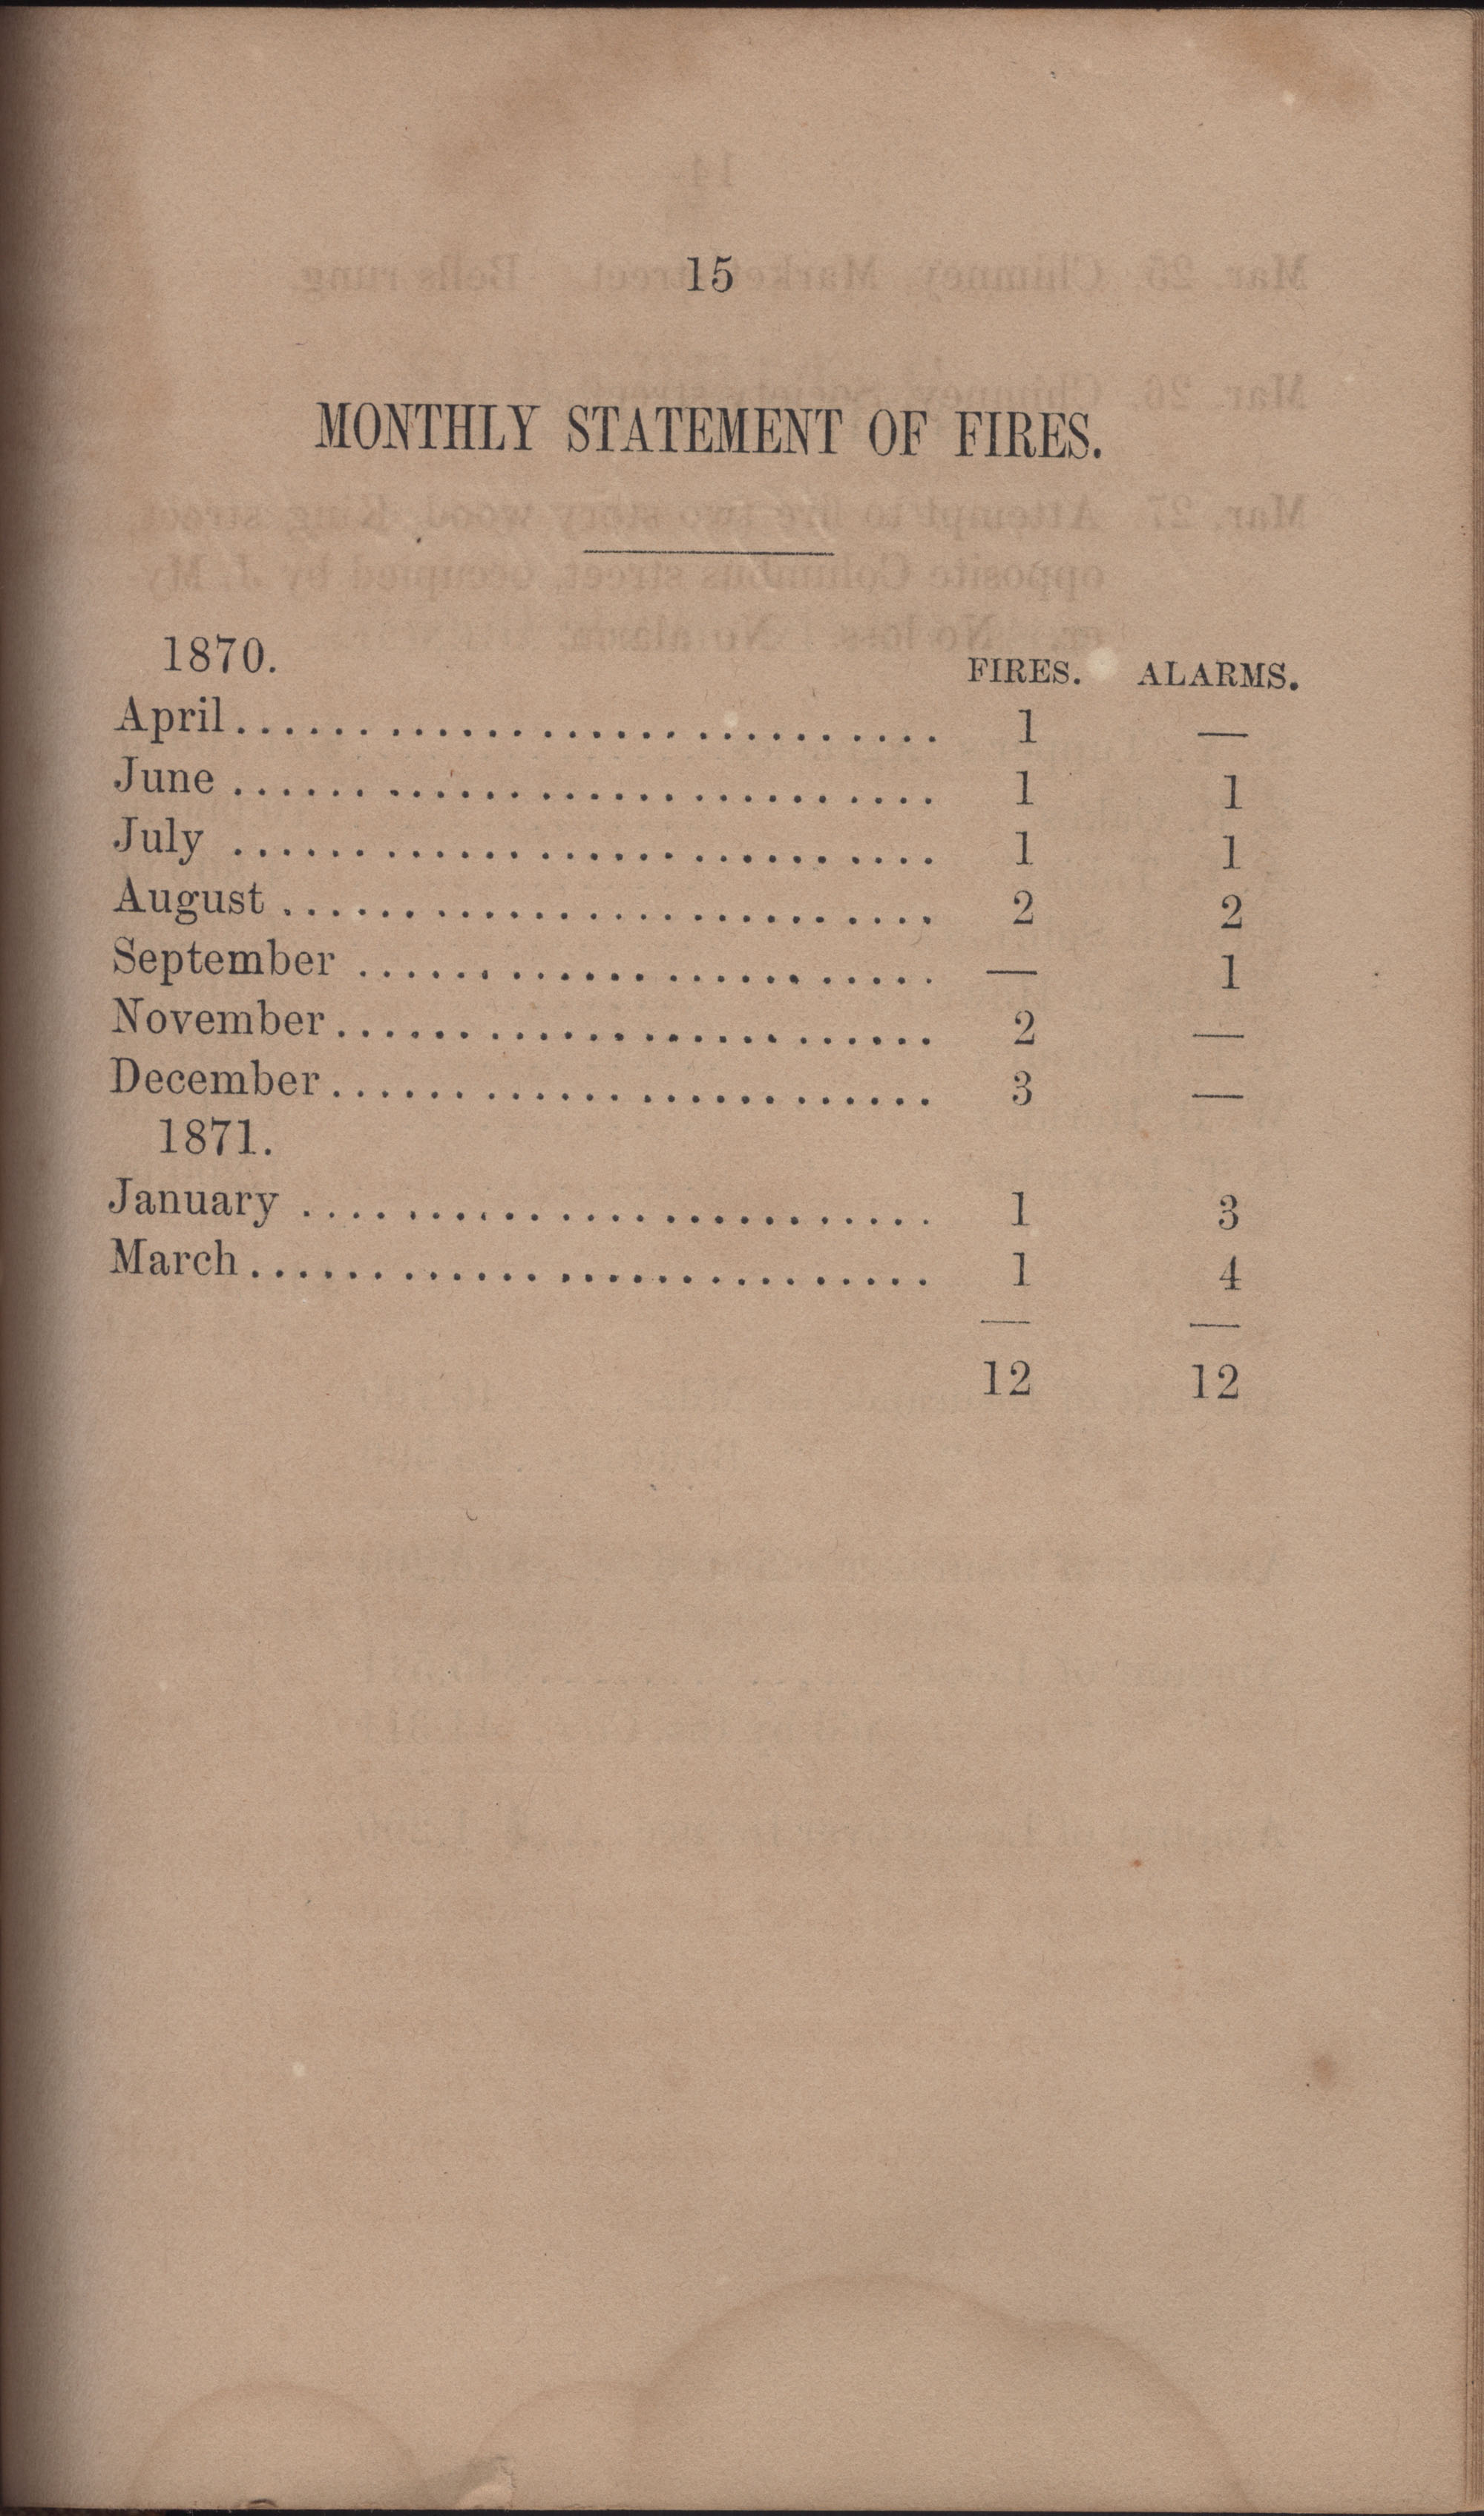 Annual Report of the Chief of the Fire Department of the City of Charleston, page 362